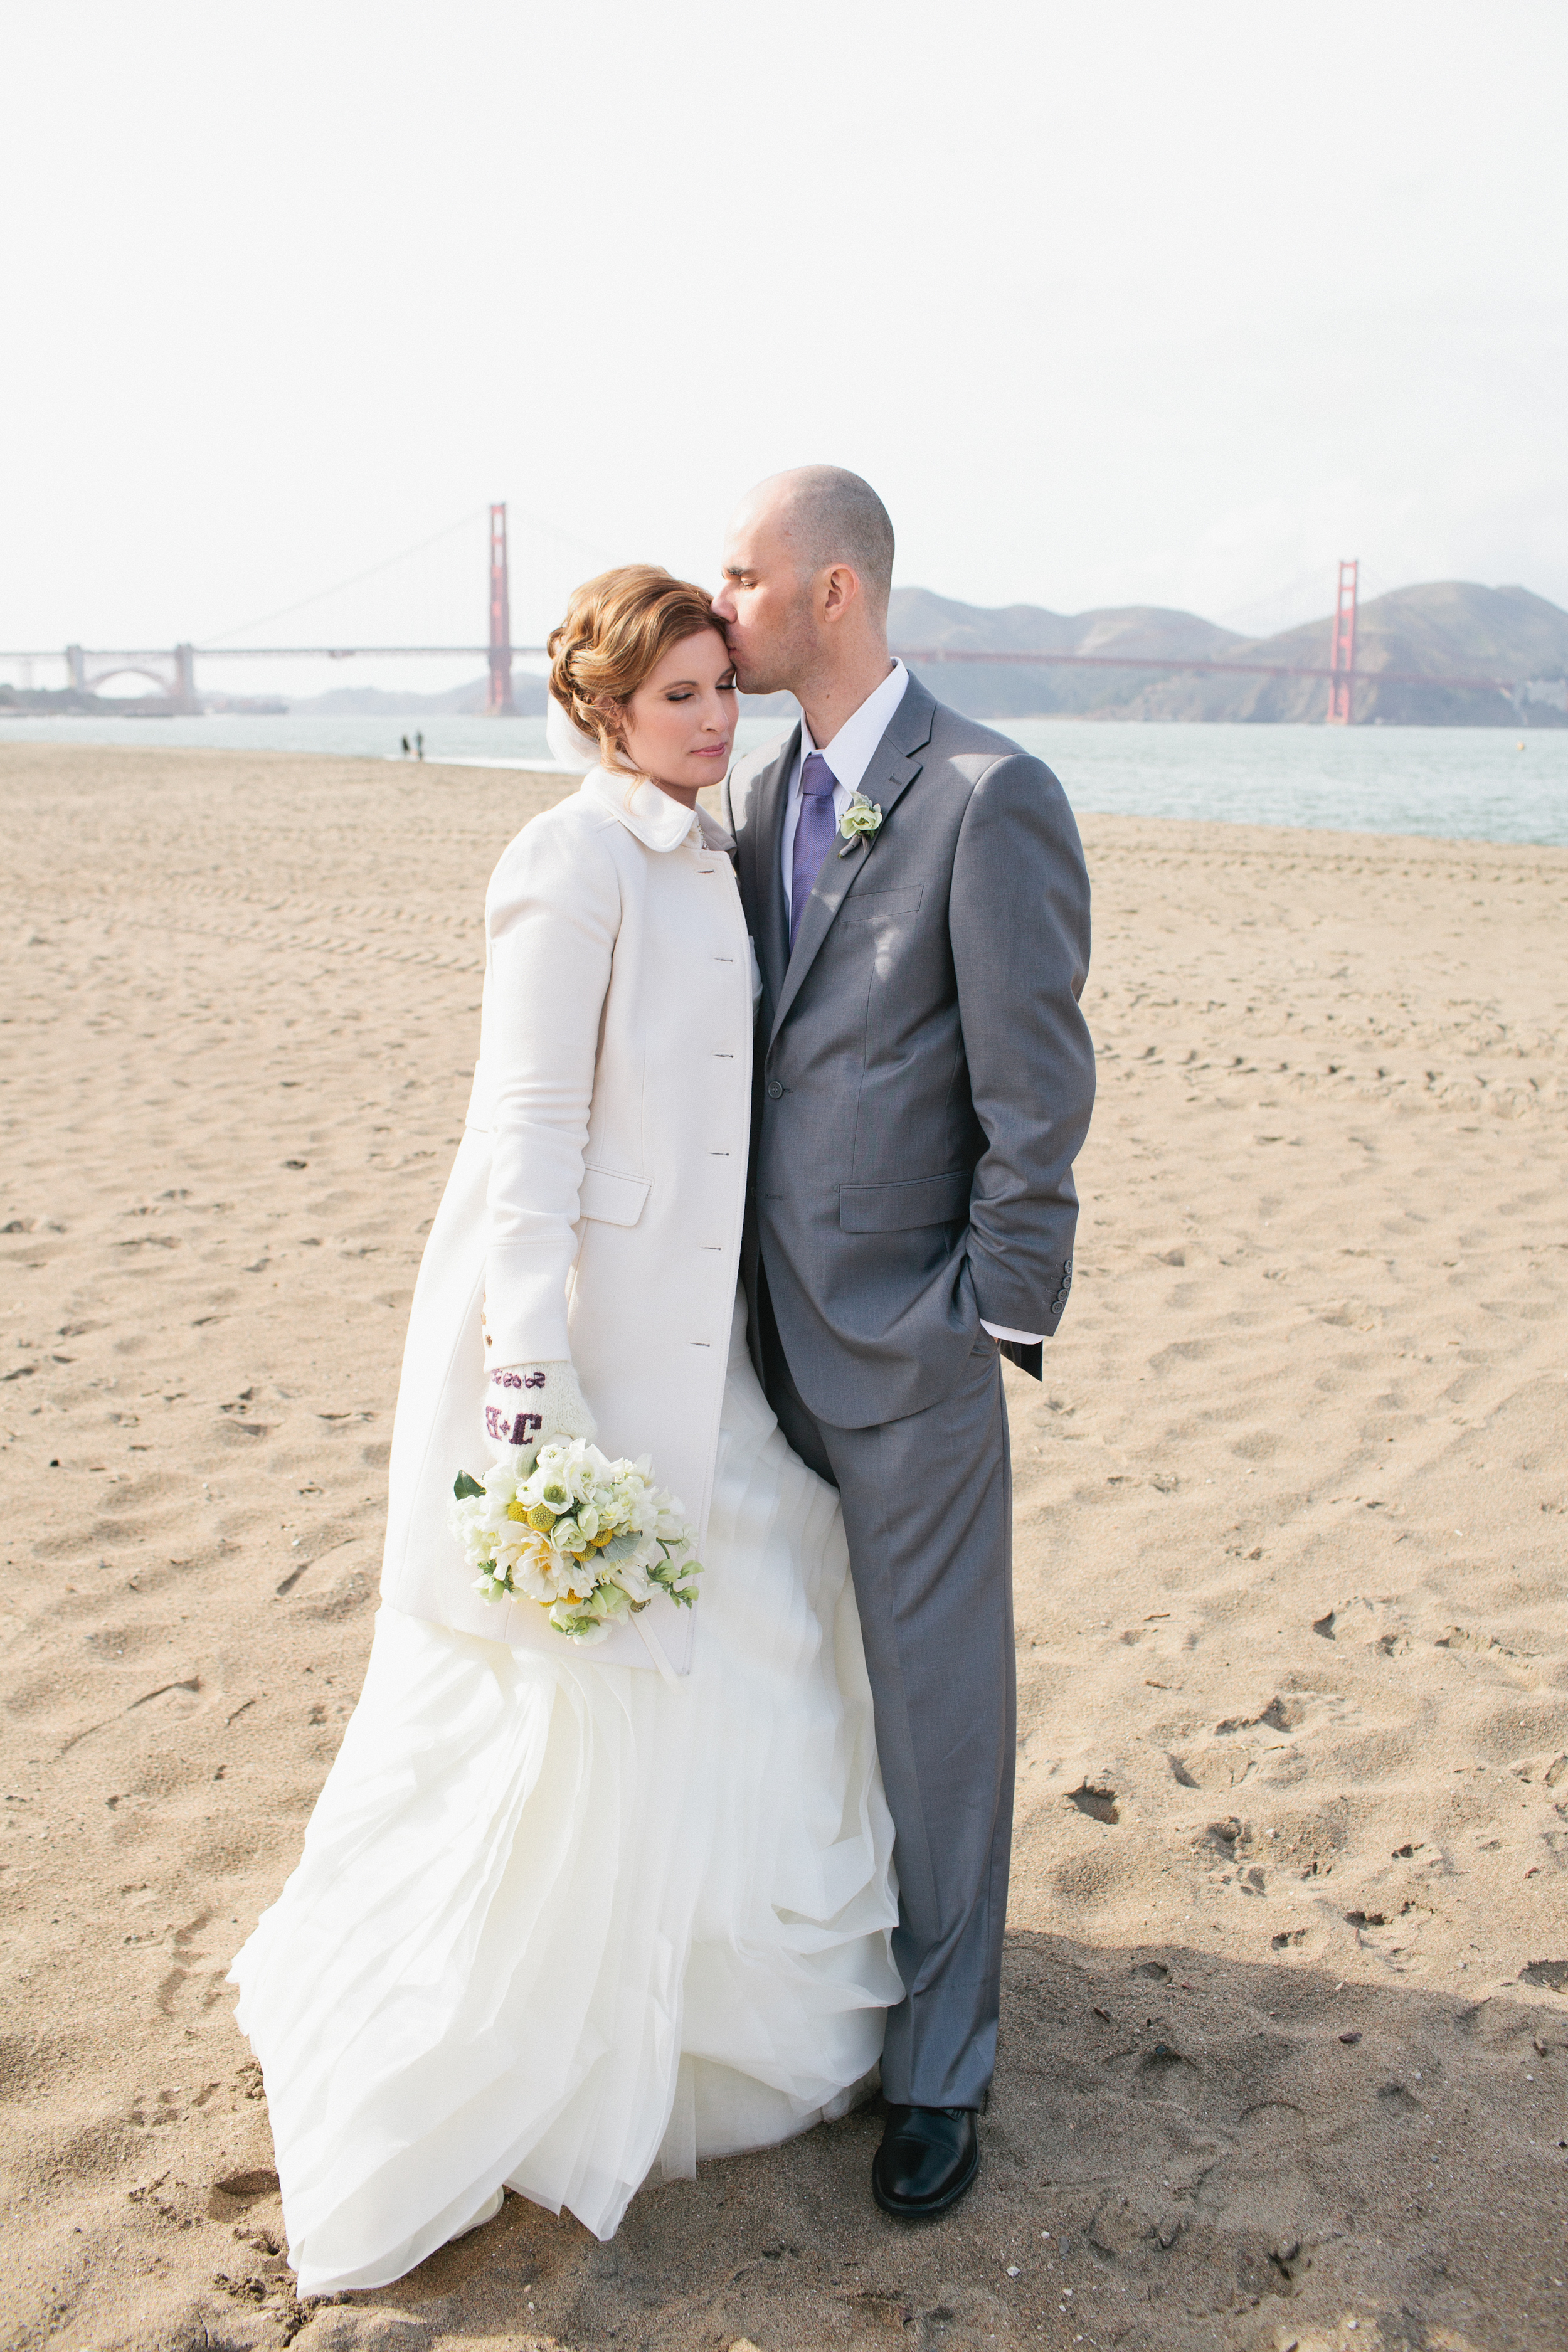 Destination-Wedding-San-Francisco-Makeup-and-Hair.jpg